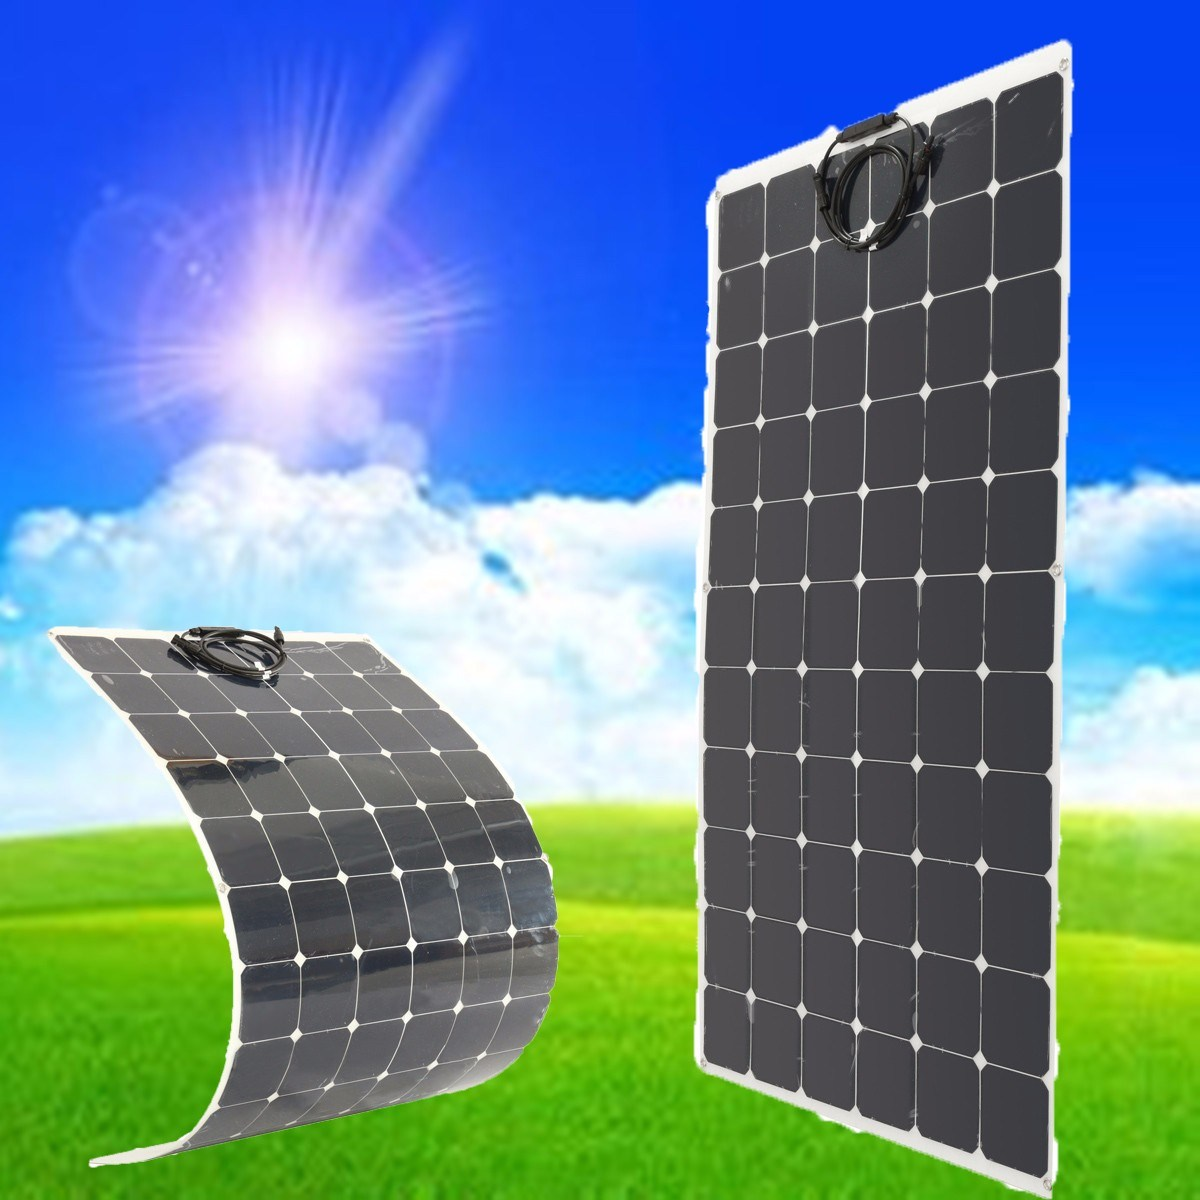 BSP 66-200 200W 18V Semi Flexible Monocrystalline Solar Panel Waterproof High Conversion Efficiency Solar Panel + 1.5m Cable sp 36 120w 12v semi flexible monocrystalline solar panel waterproof high conversion efficiency for rv boat car 1 5m cable